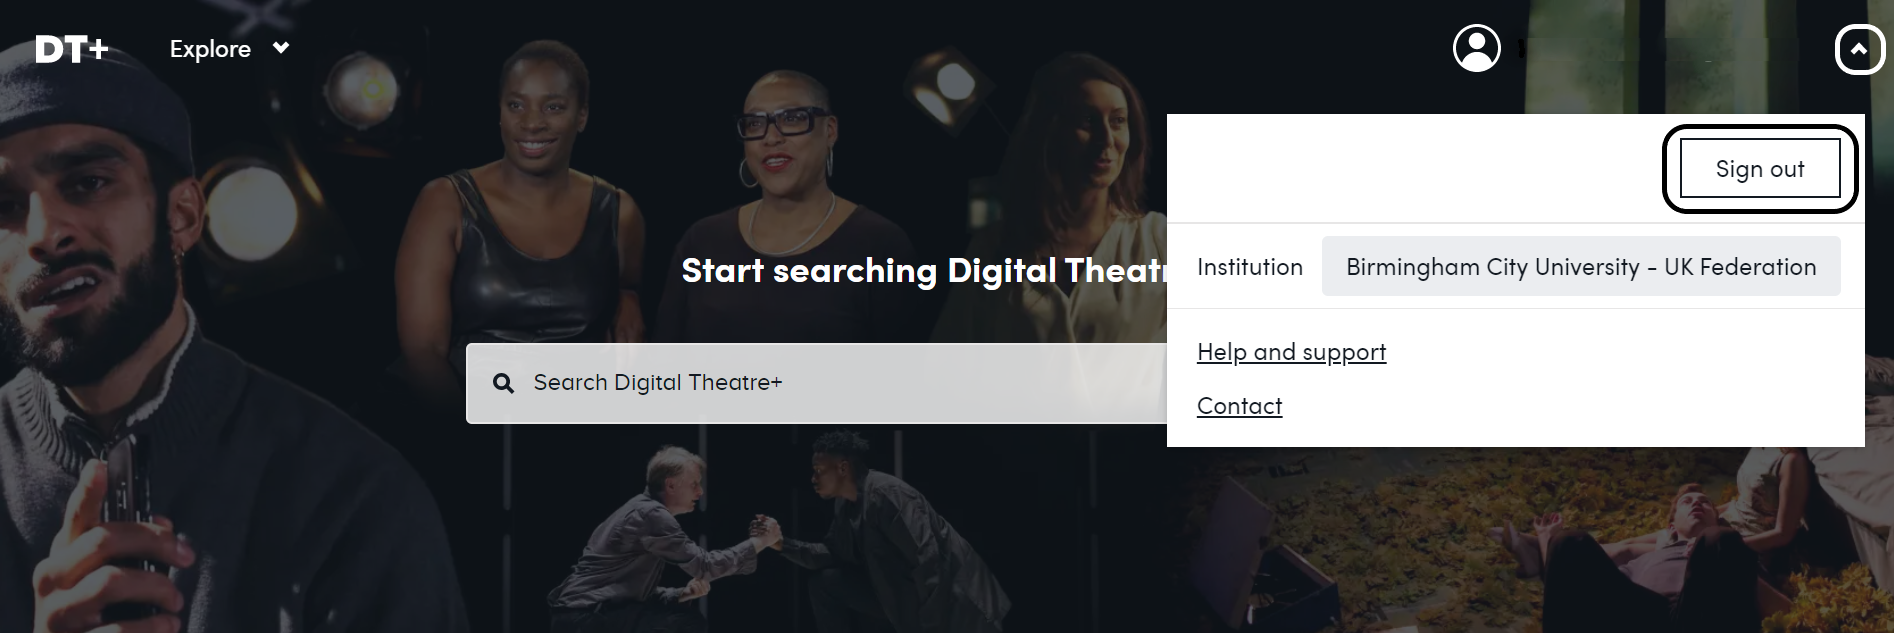 Option to sign out of Digital Theatre Plus